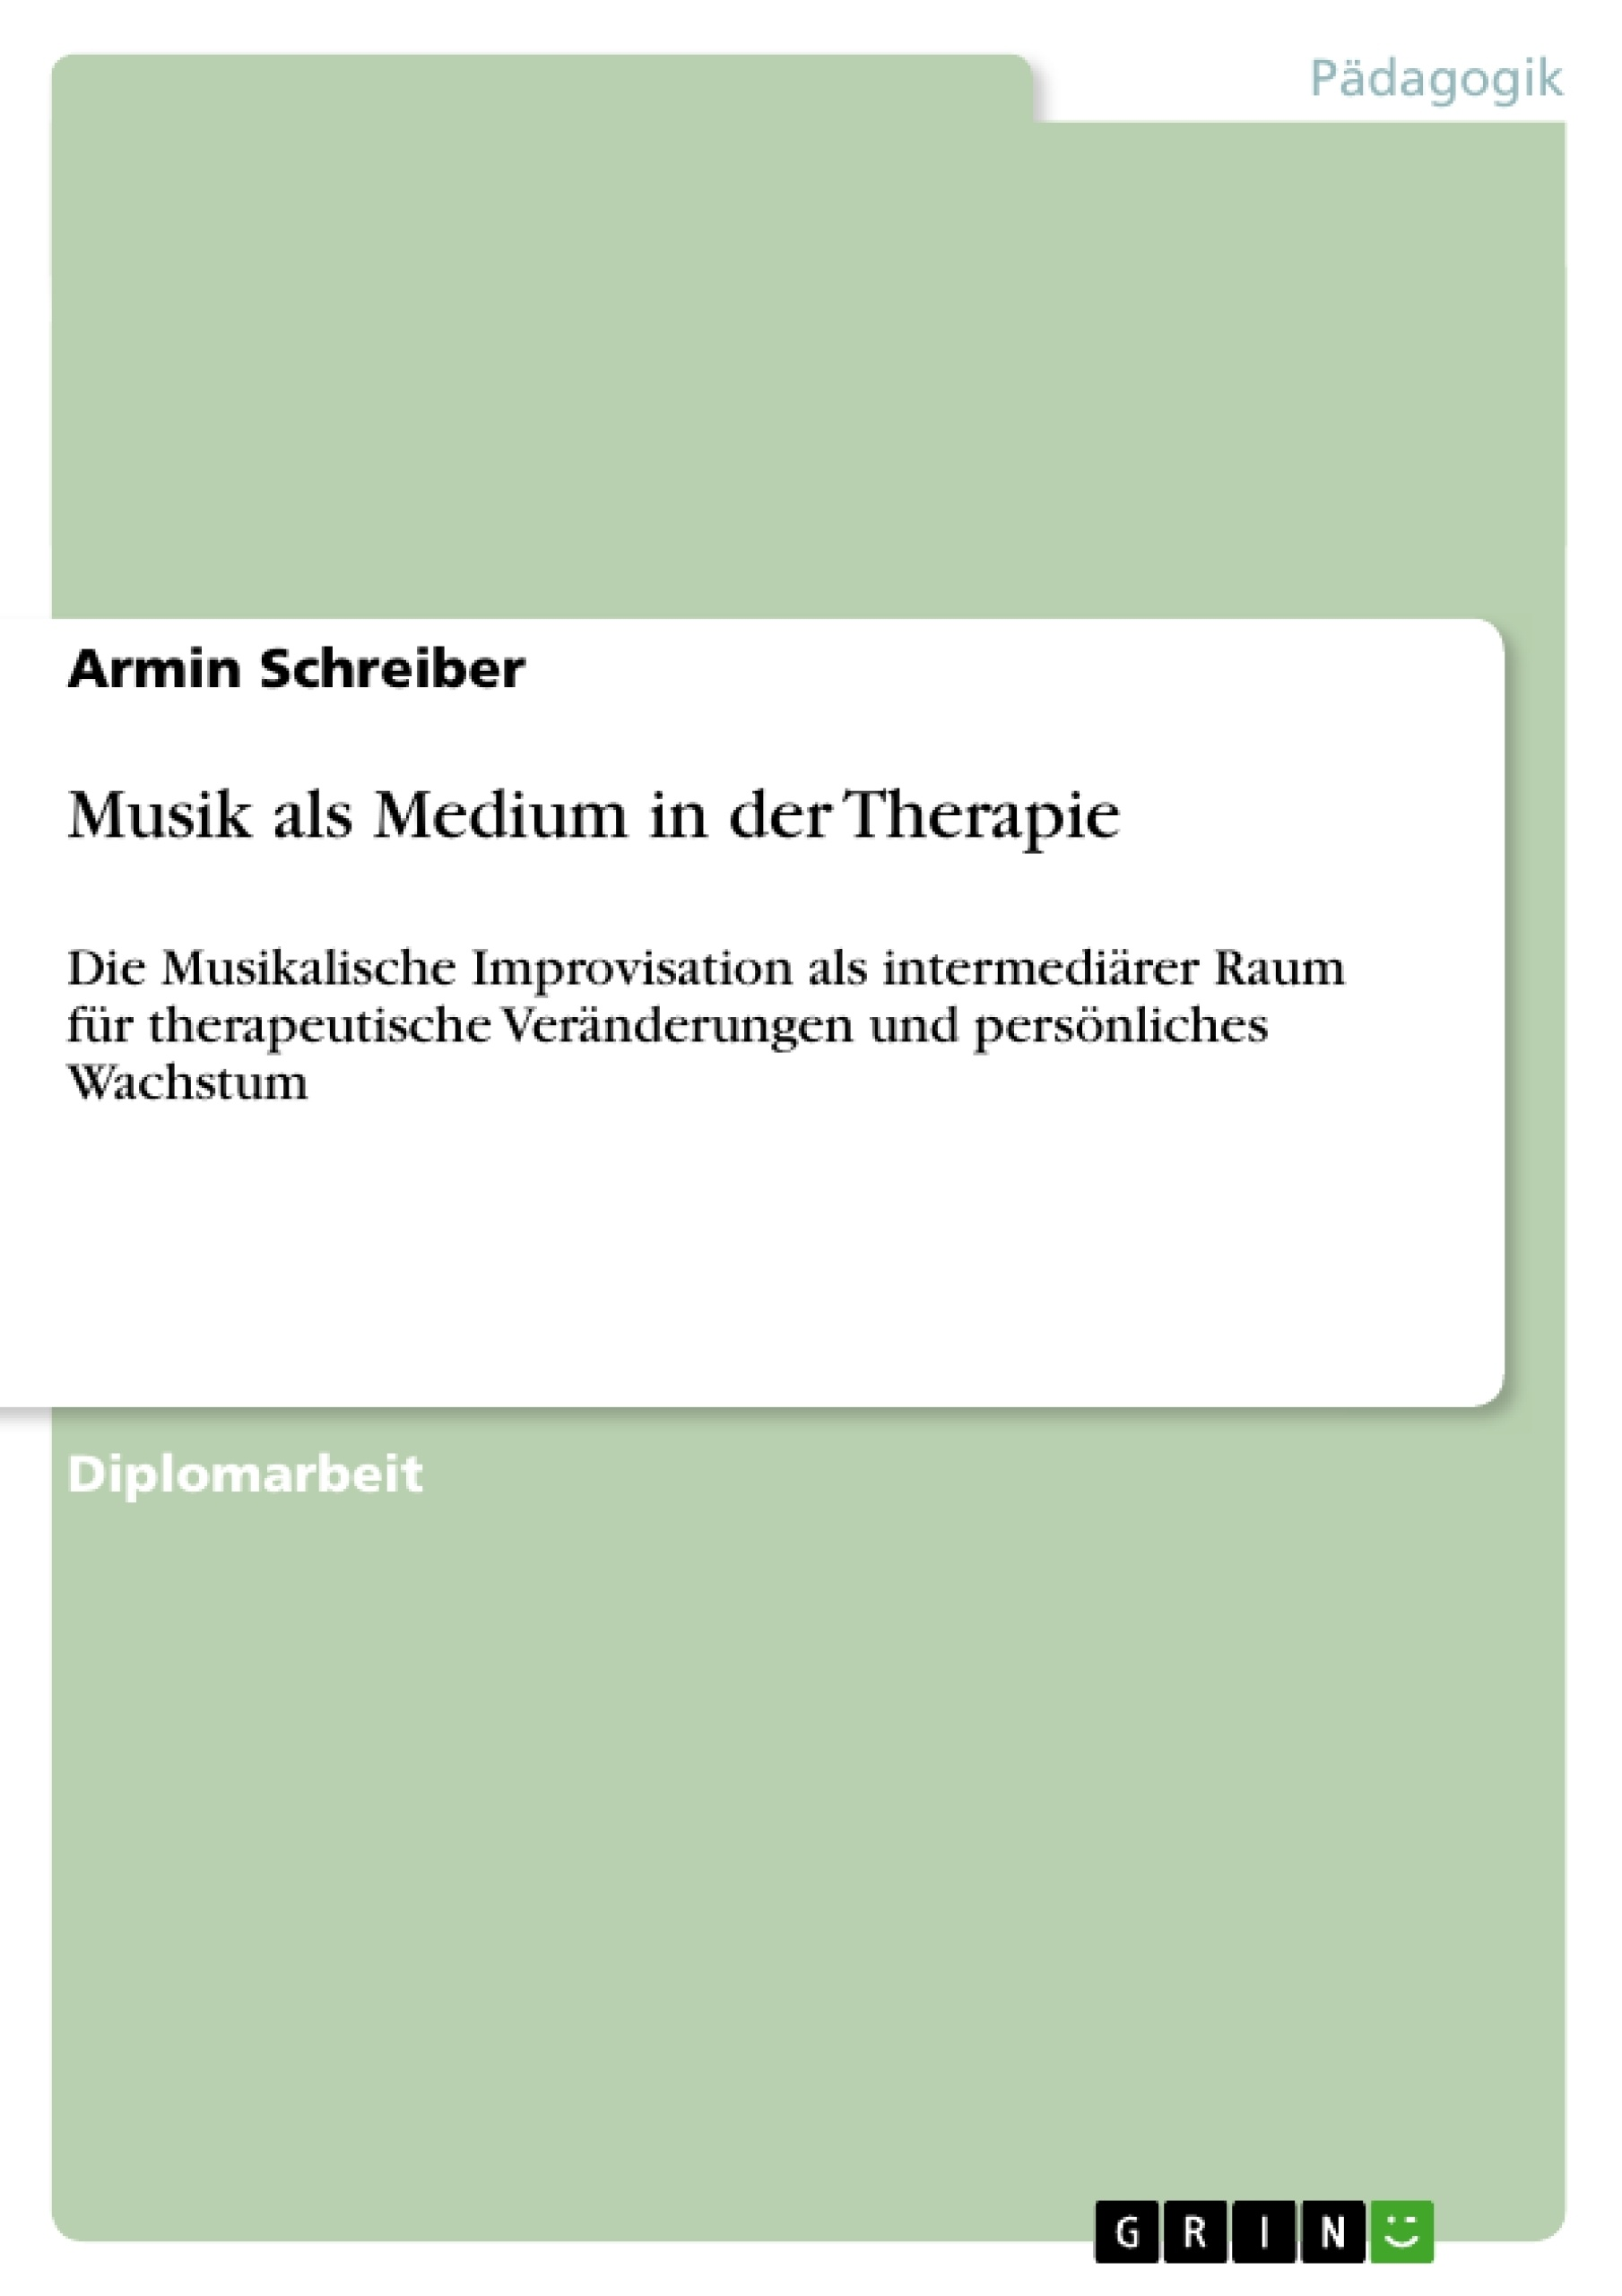 Titel: Musik als Medium in der Therapie